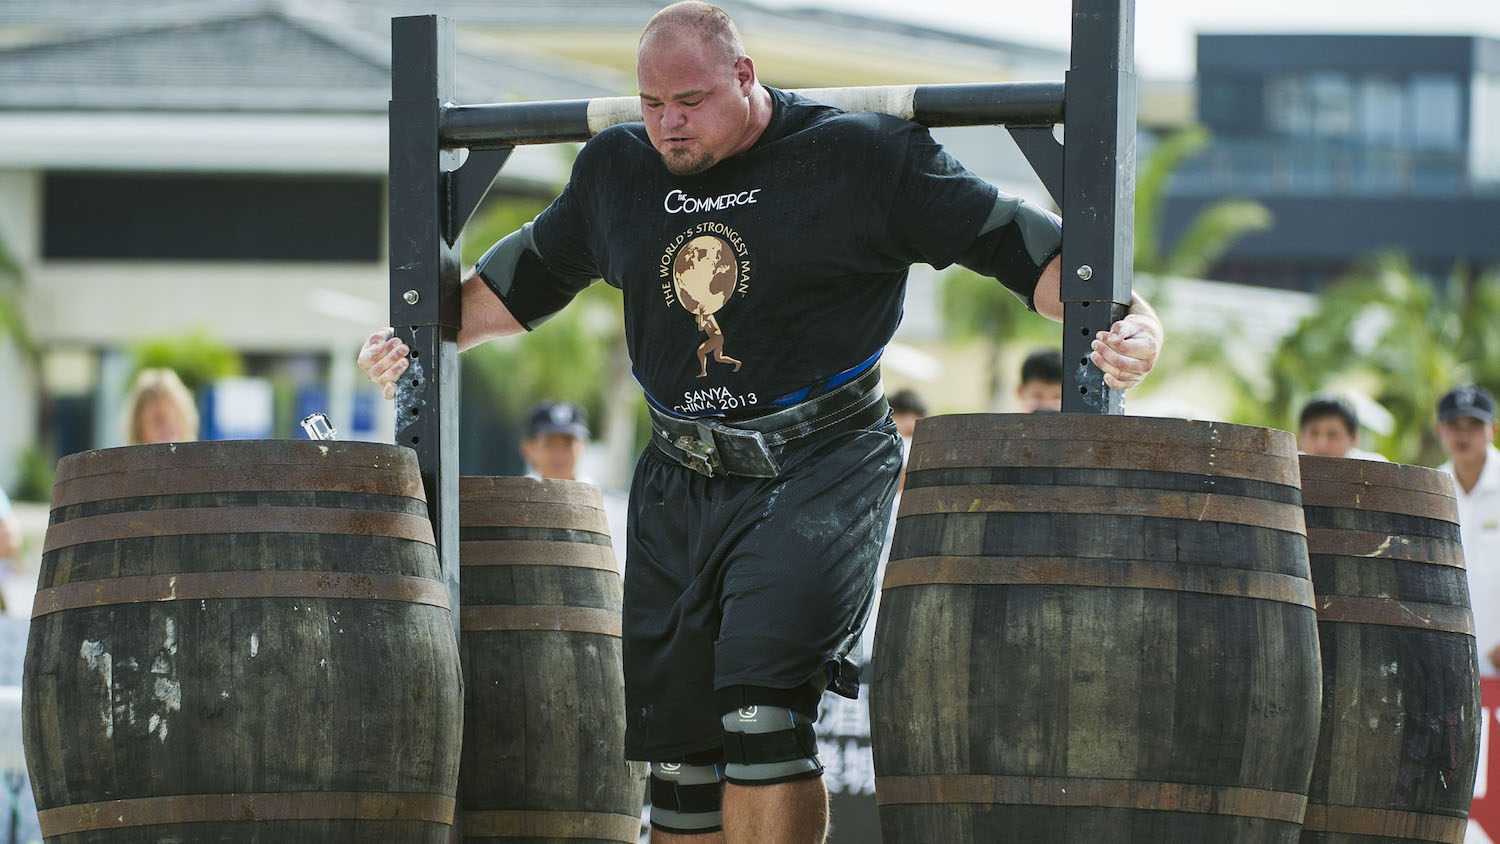 This Is What the World's Strongest Man Eats in a Day